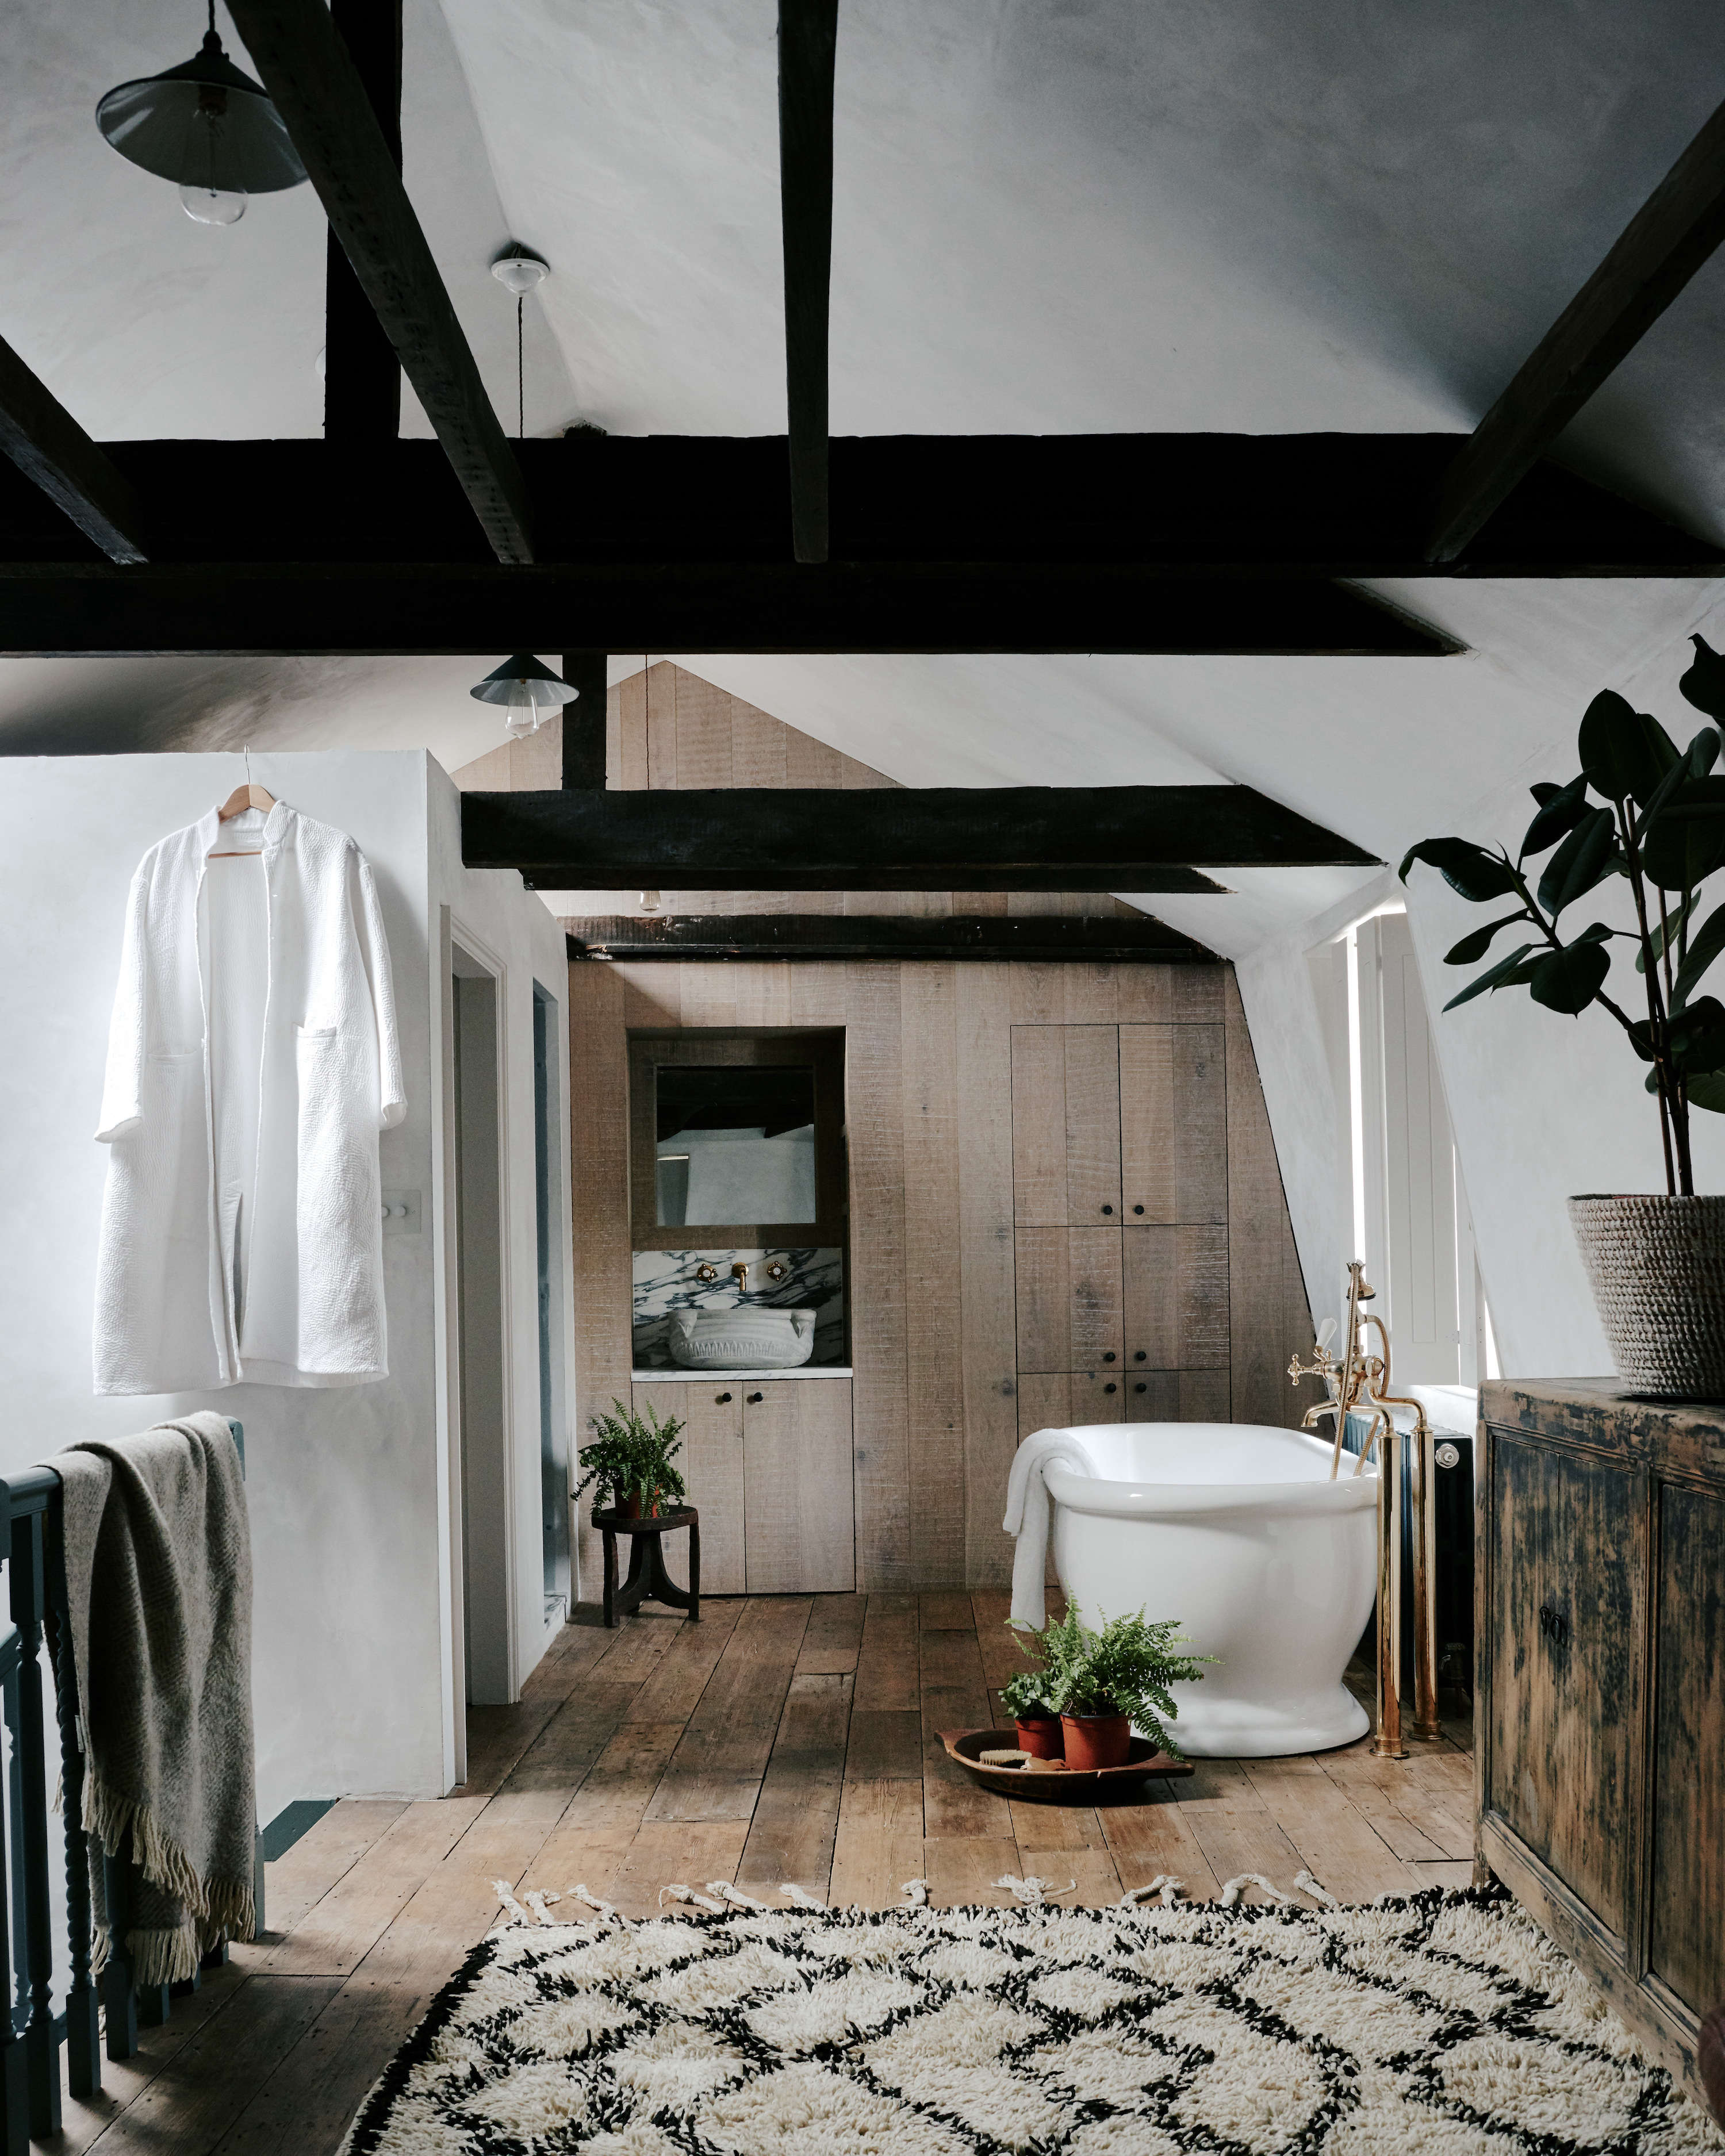 Steal This Look: Ensuite Bath Alcove in a London Renovation - Remodelista